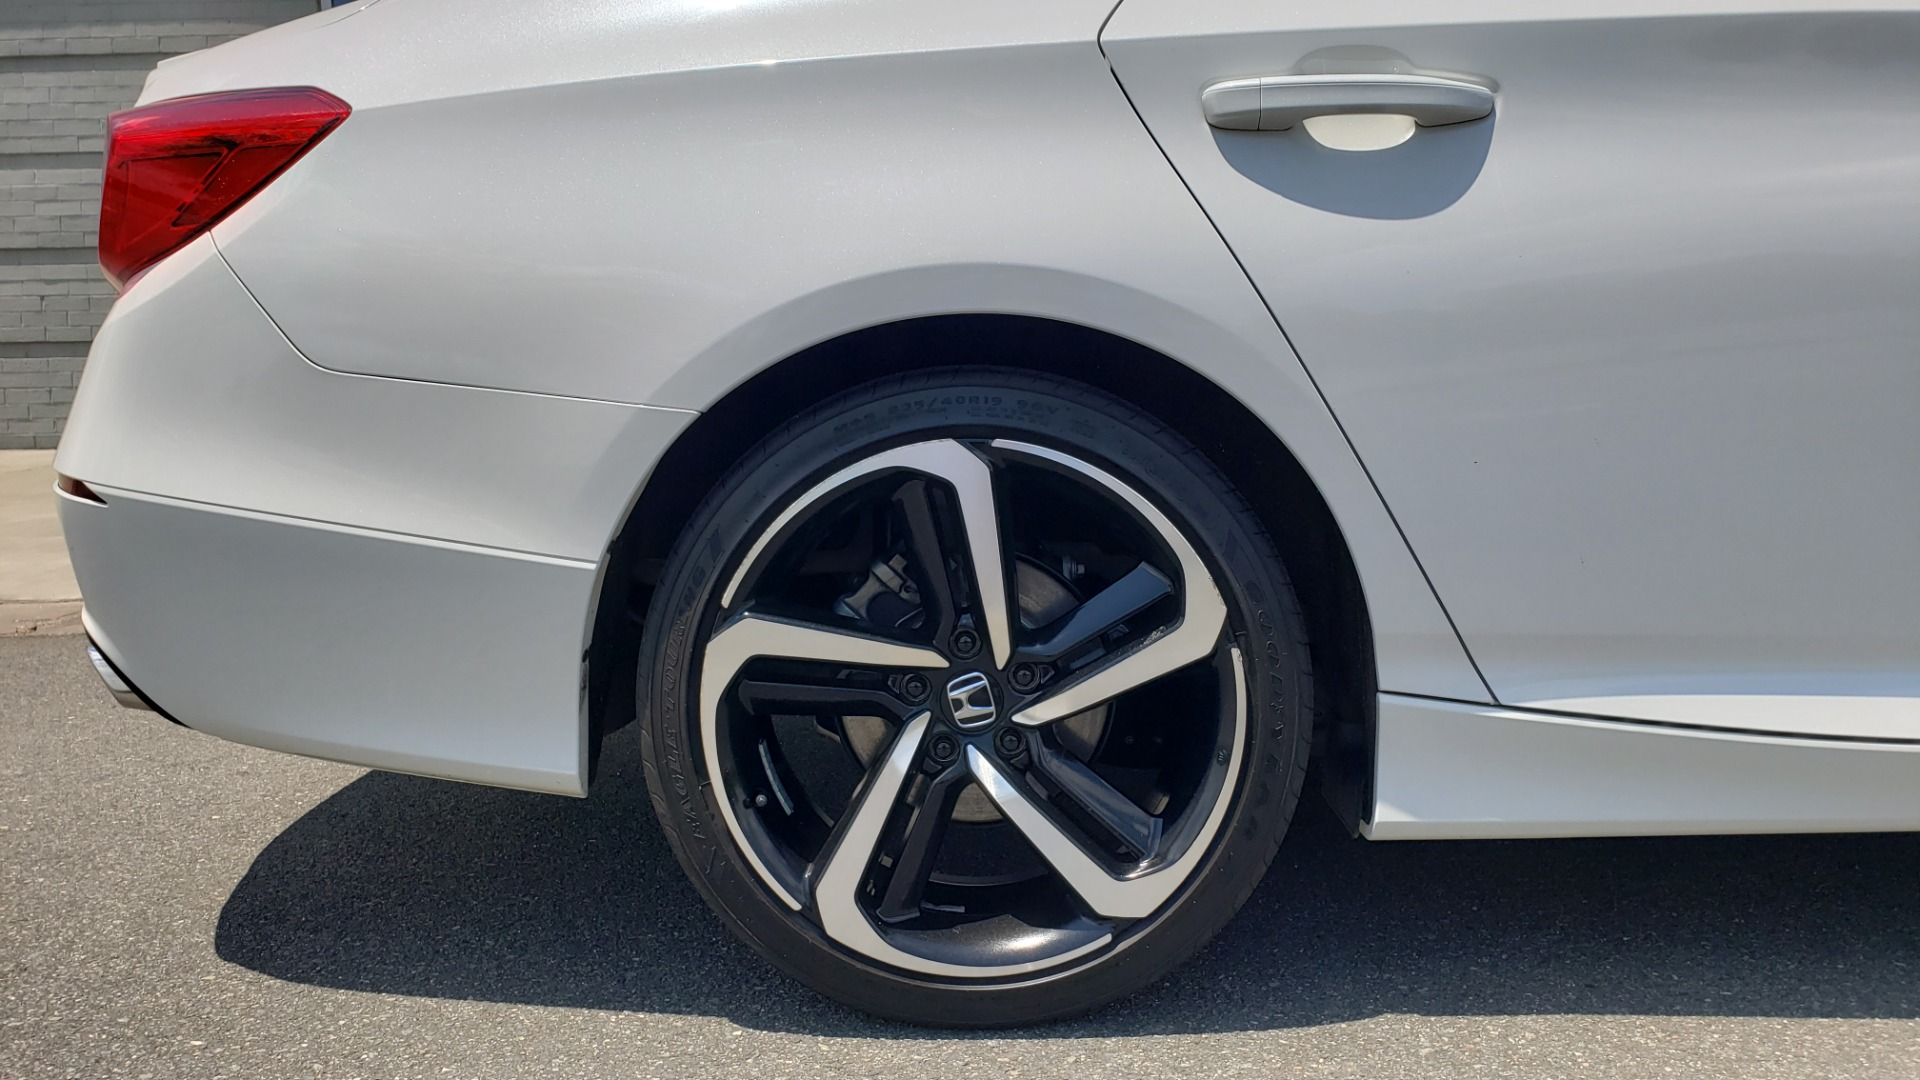 Used 2018 Honda ACCORD SEDAN SPORT 1.5T / CVT TRANS / FWD / 19IN WHEELS for sale $20,995 at Formula Imports in Charlotte NC 28227 68